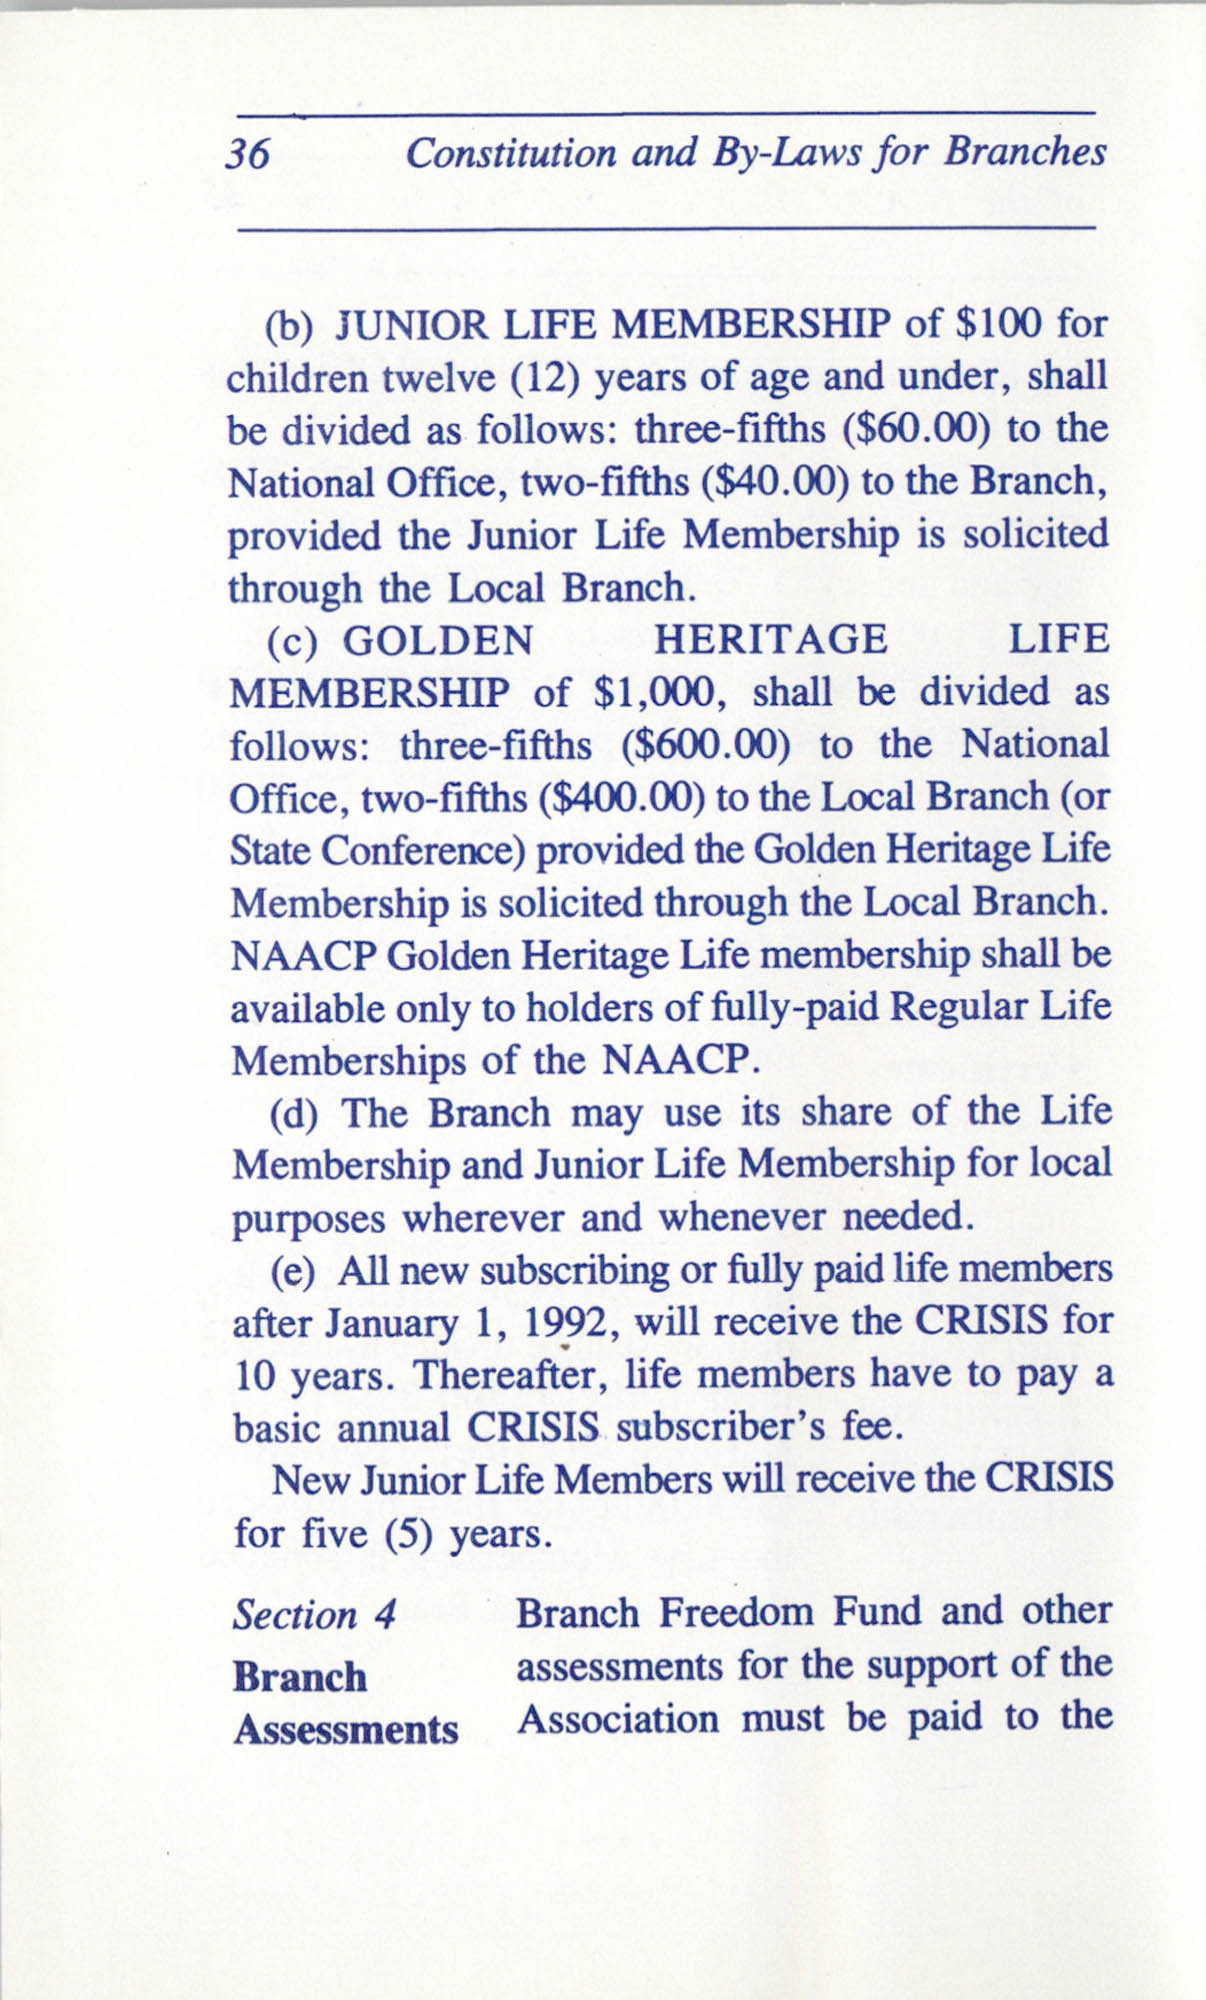 Constitution and By-Laws for Branches of the NAACP, June 1993, Page 36